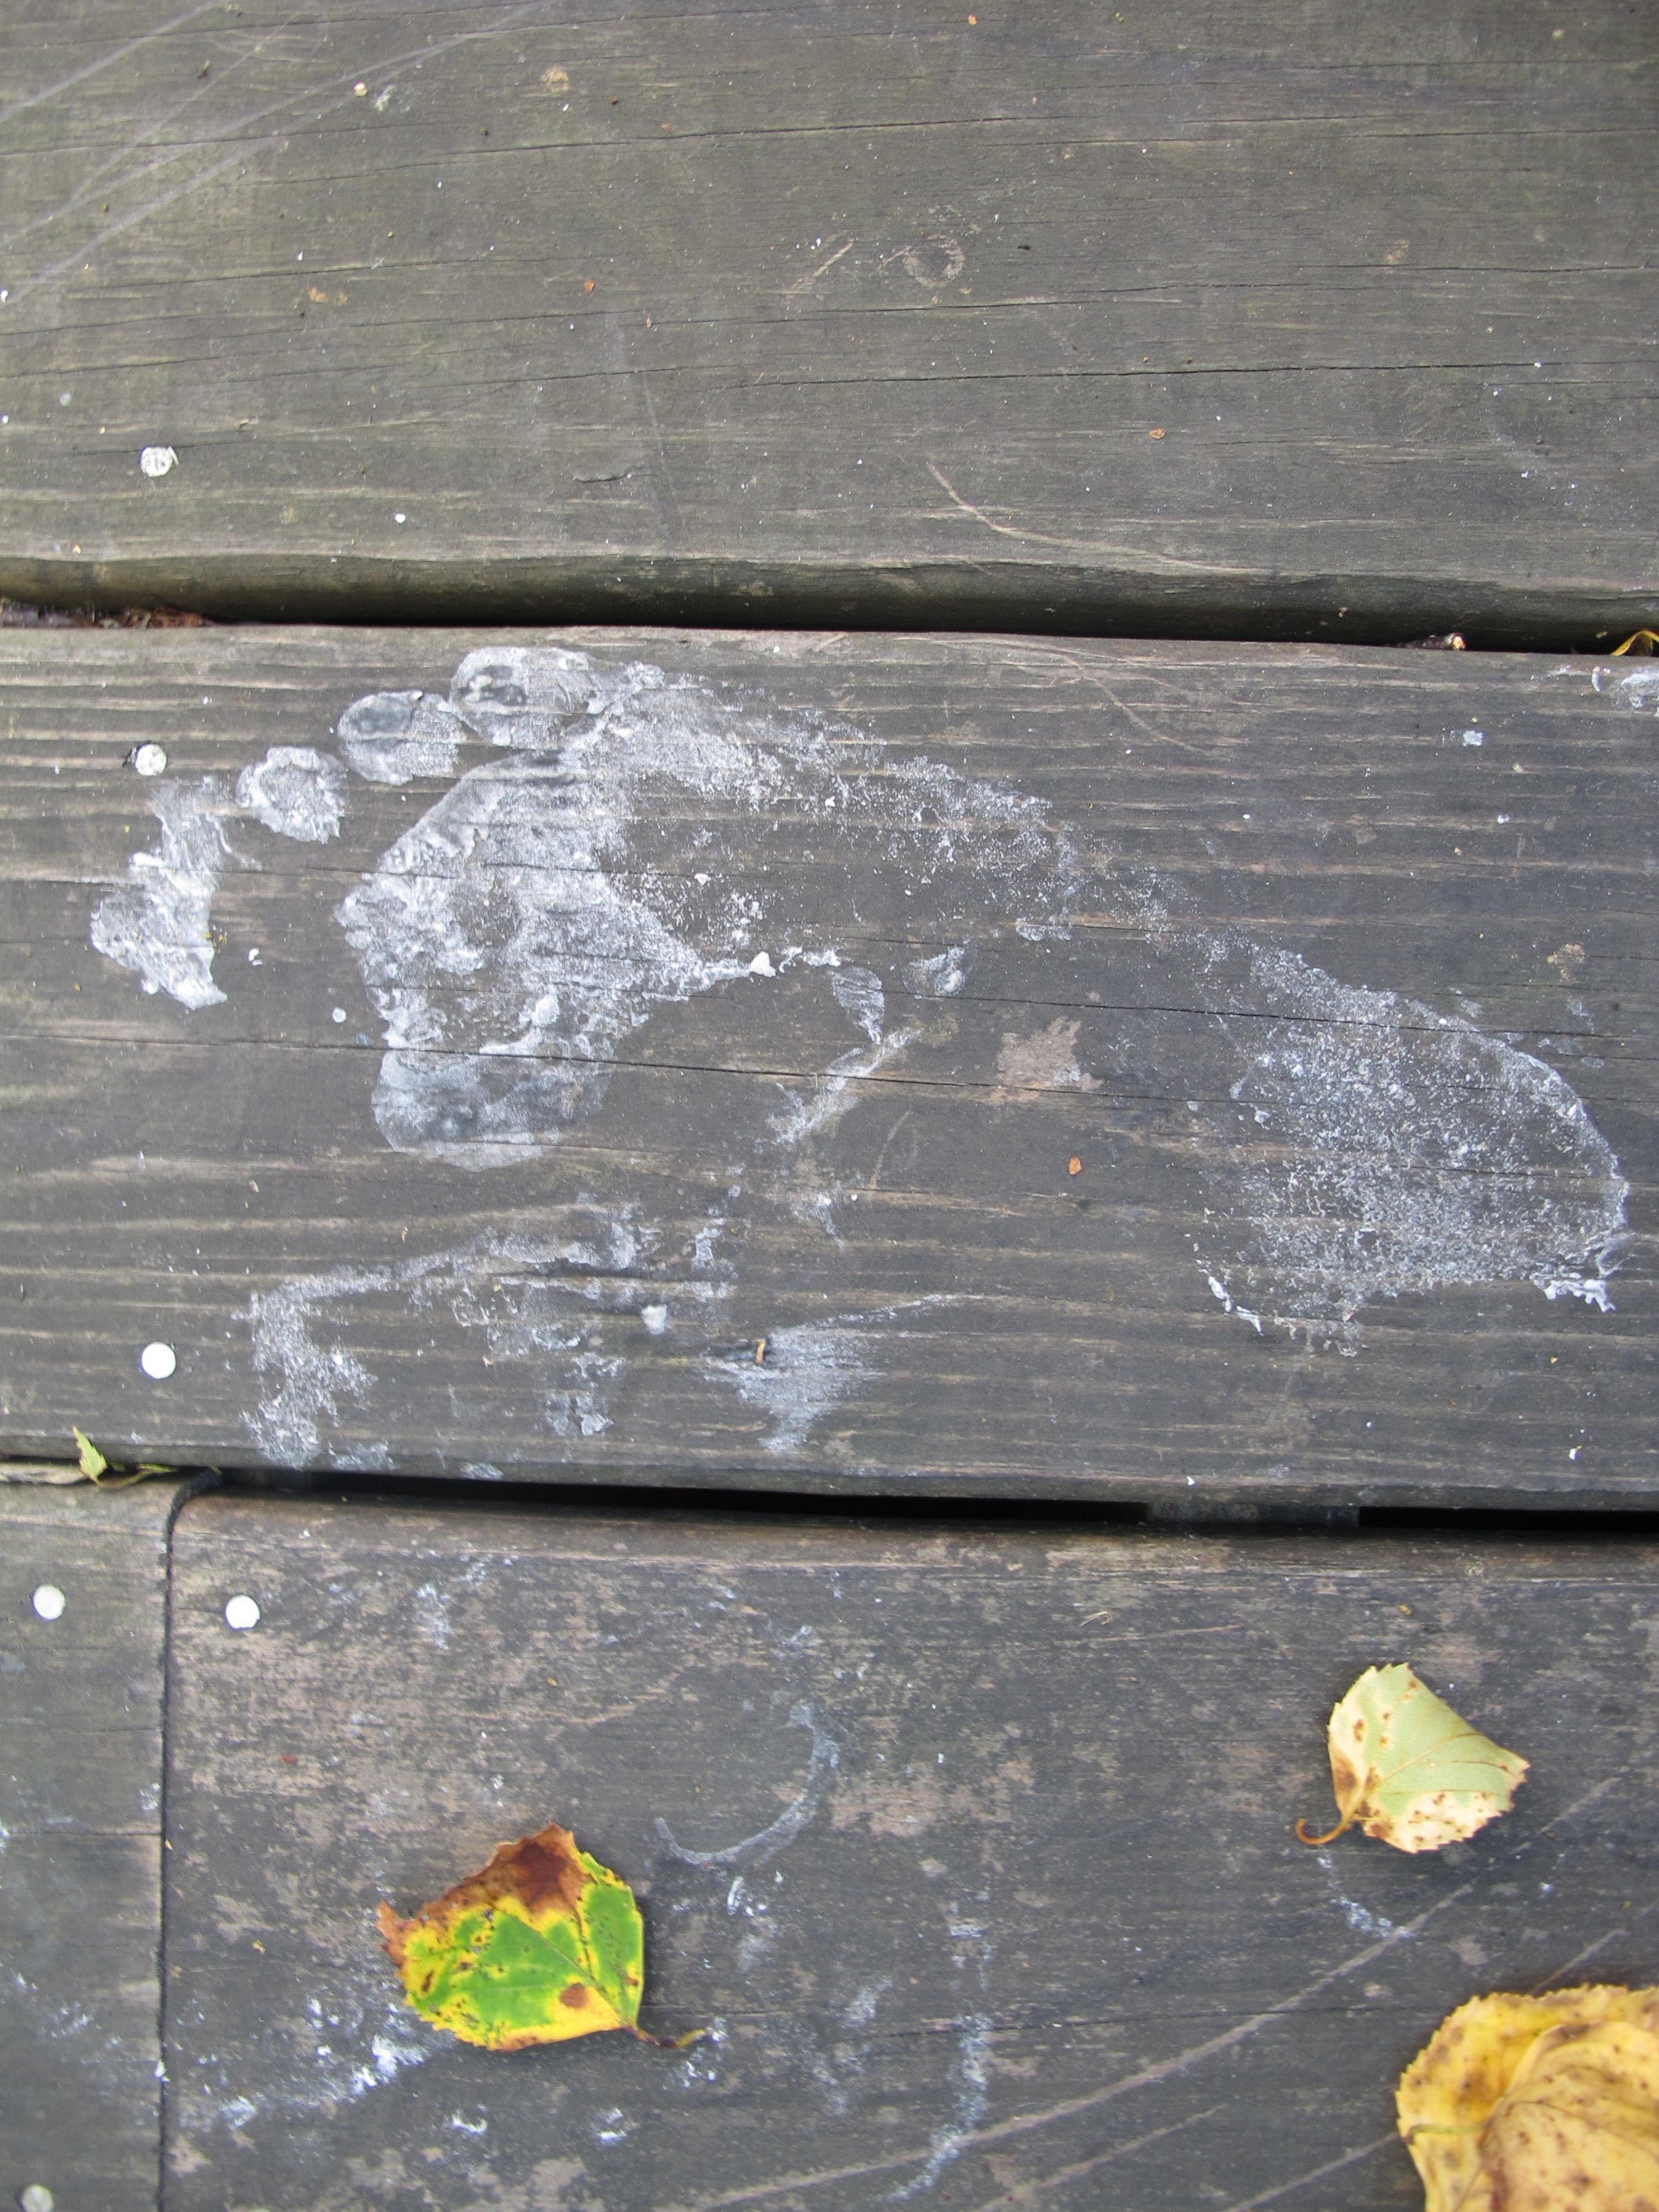 We began creating a Moon-rock installation on the deck at the Notebook and, like the late Neil Armstrong, left behind our lunar footprints.